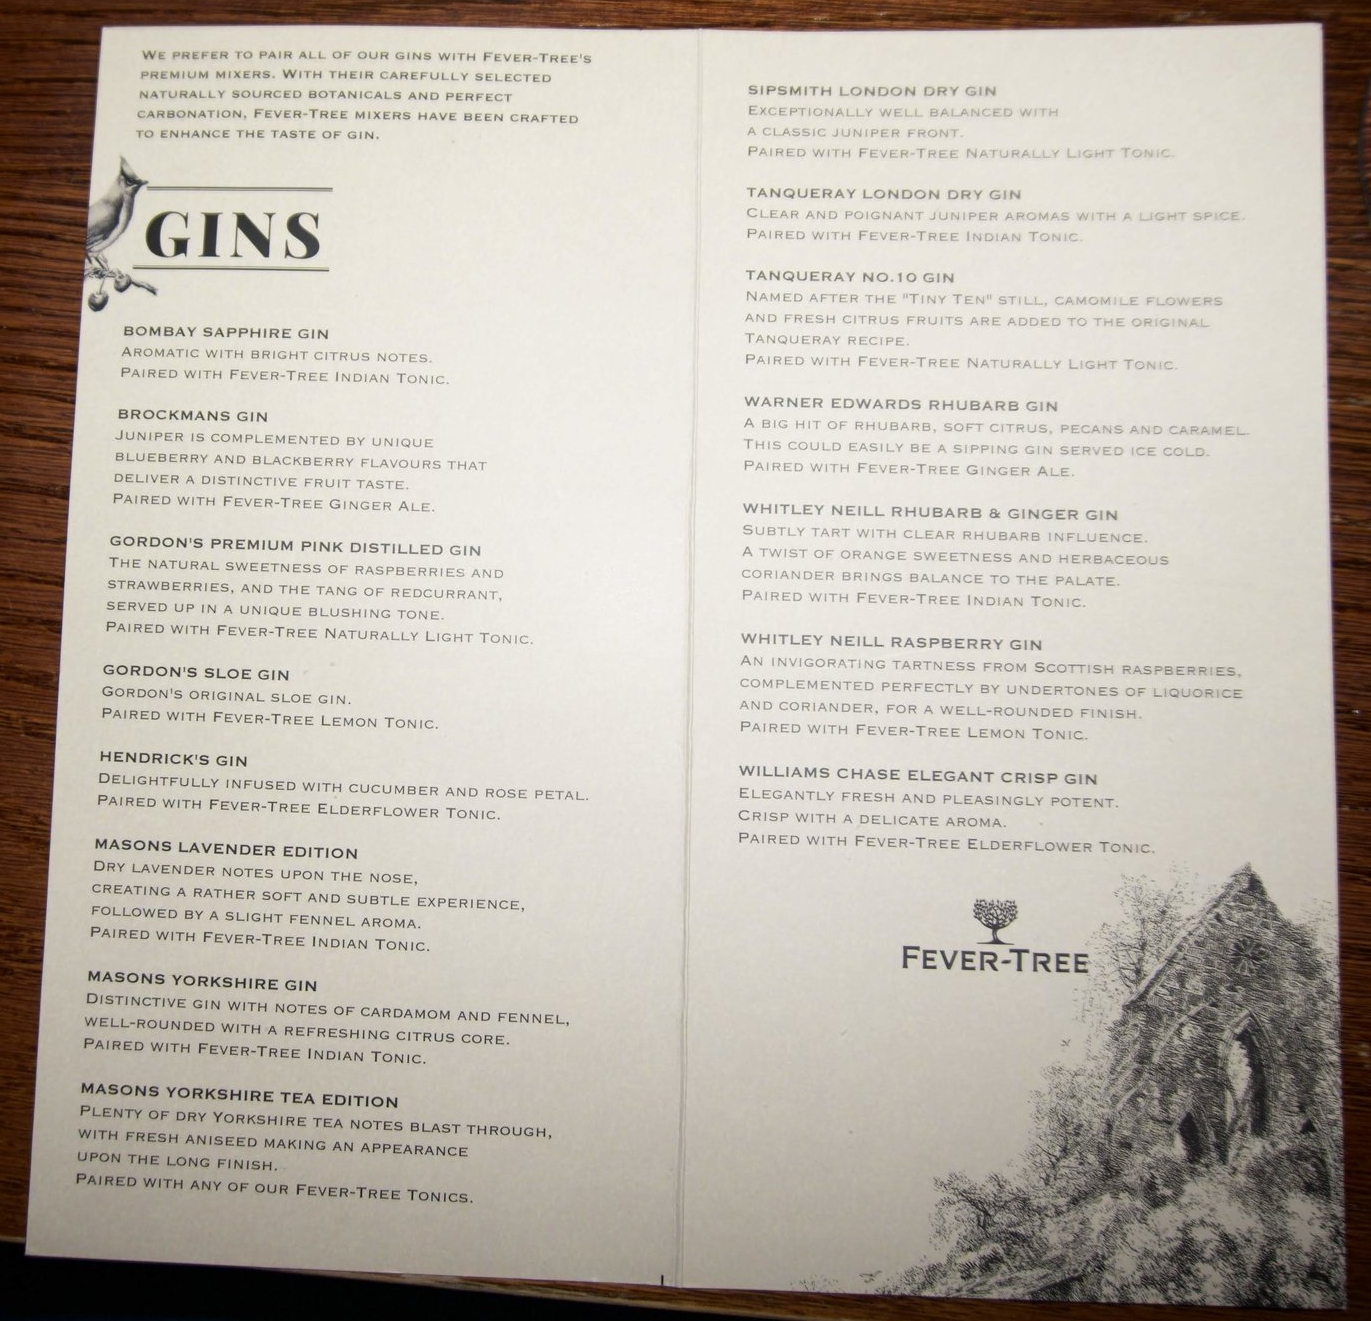 lots of gin options!!